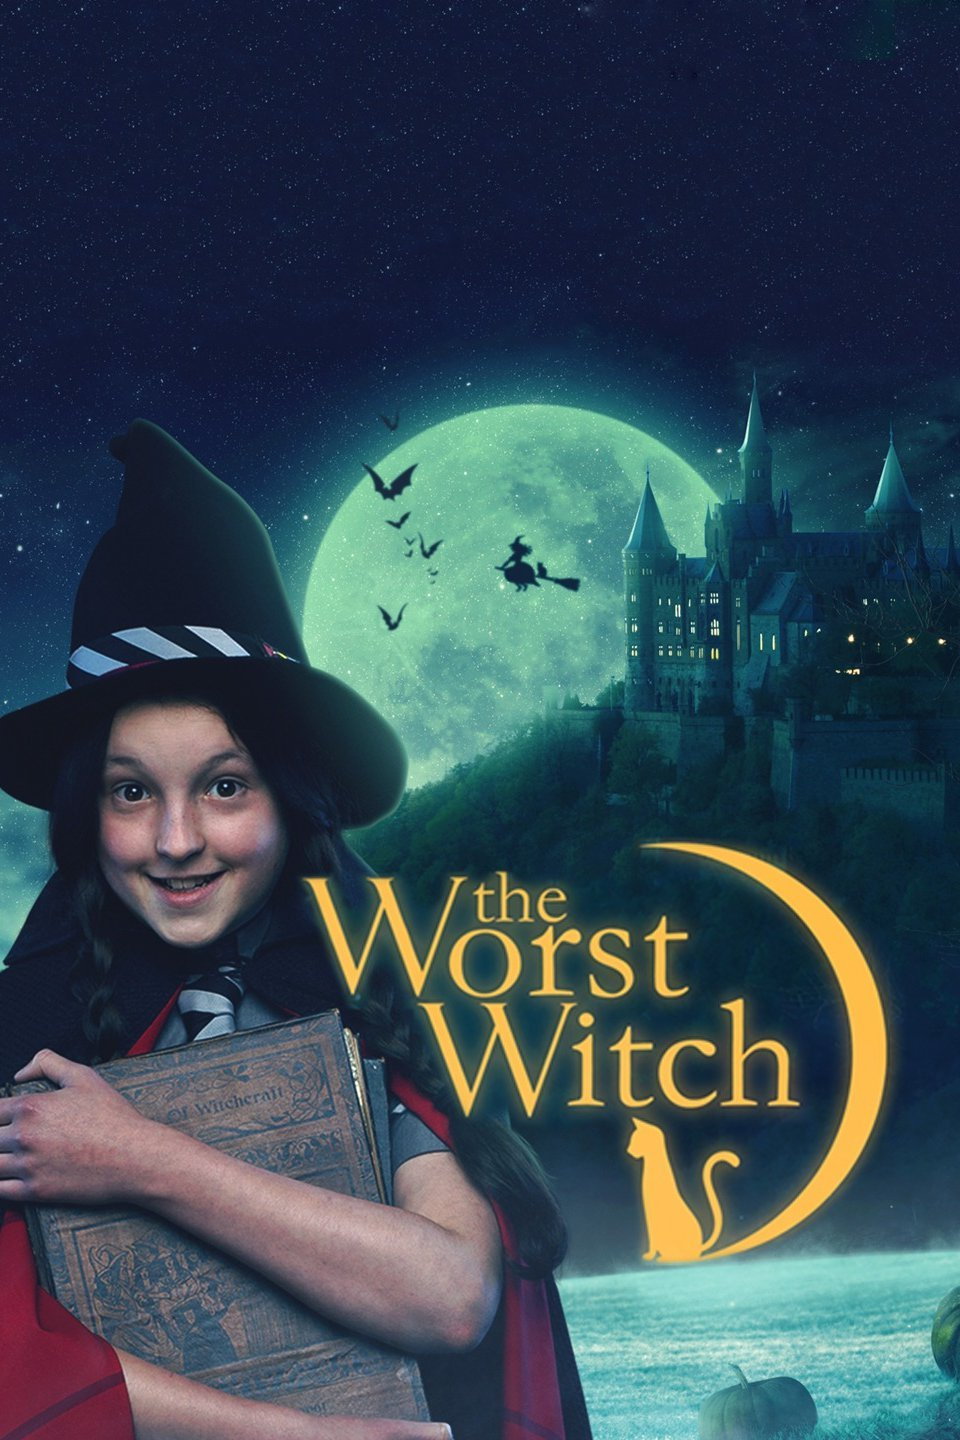 The Worst Witch S01 E03